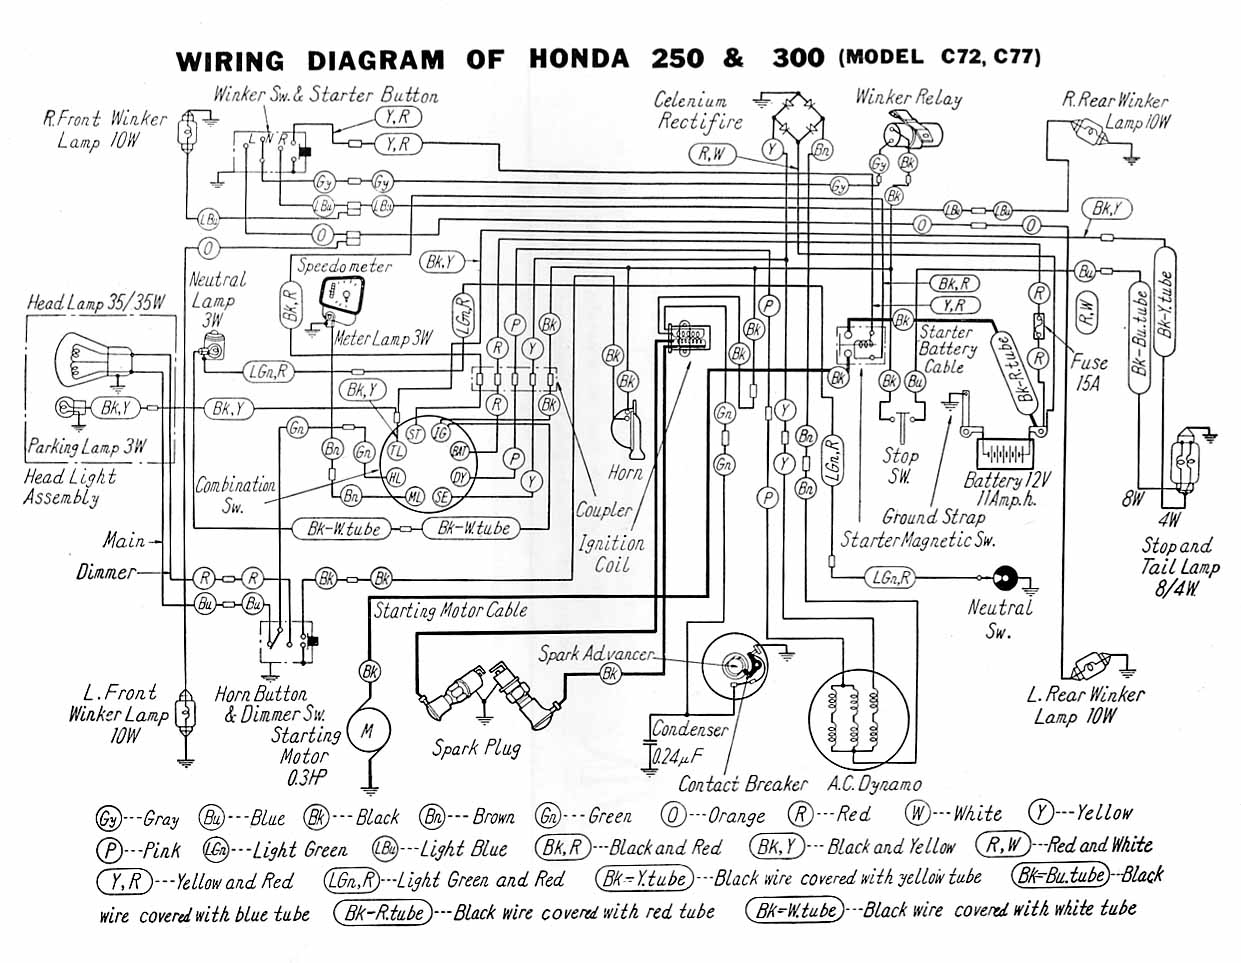 Honda C72 C77 Wiring Diagram index of images 3 3e triumph t140 wiring diagram at eliteediting.co